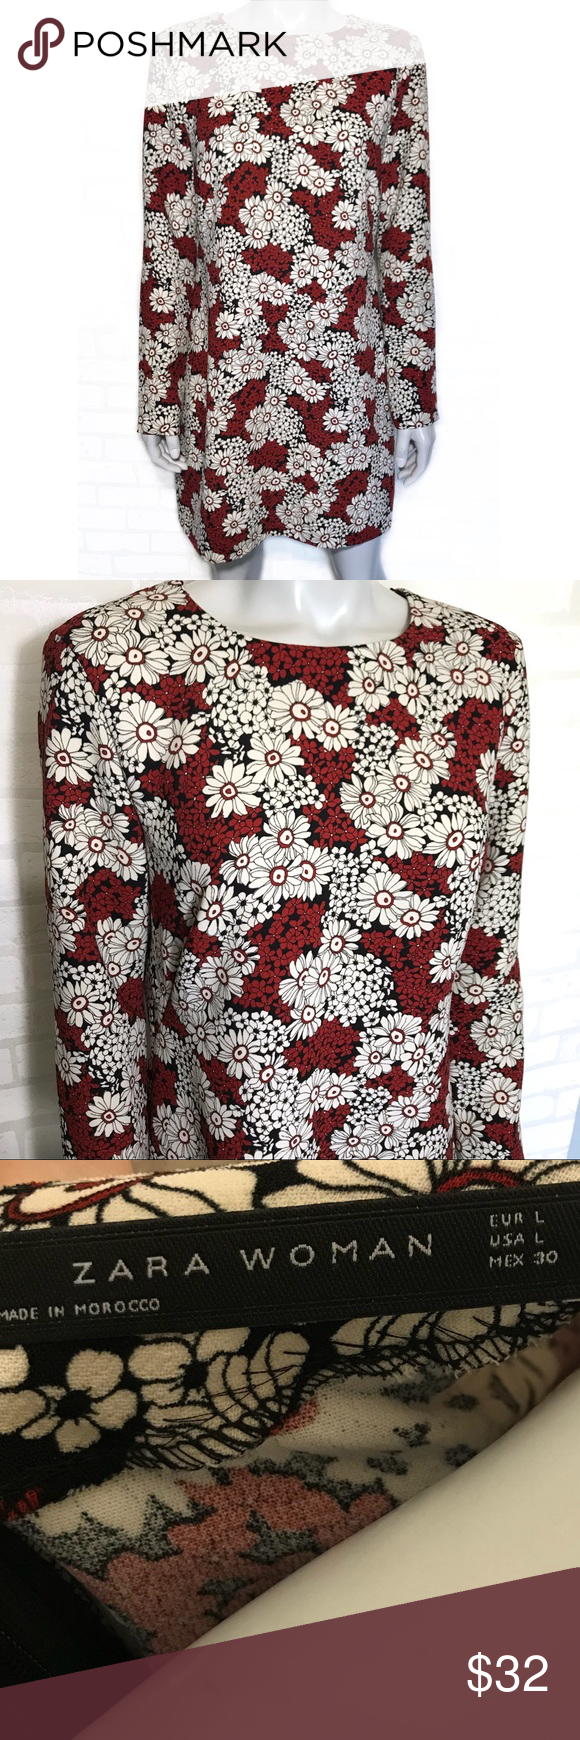 Zara black white and red floral dress